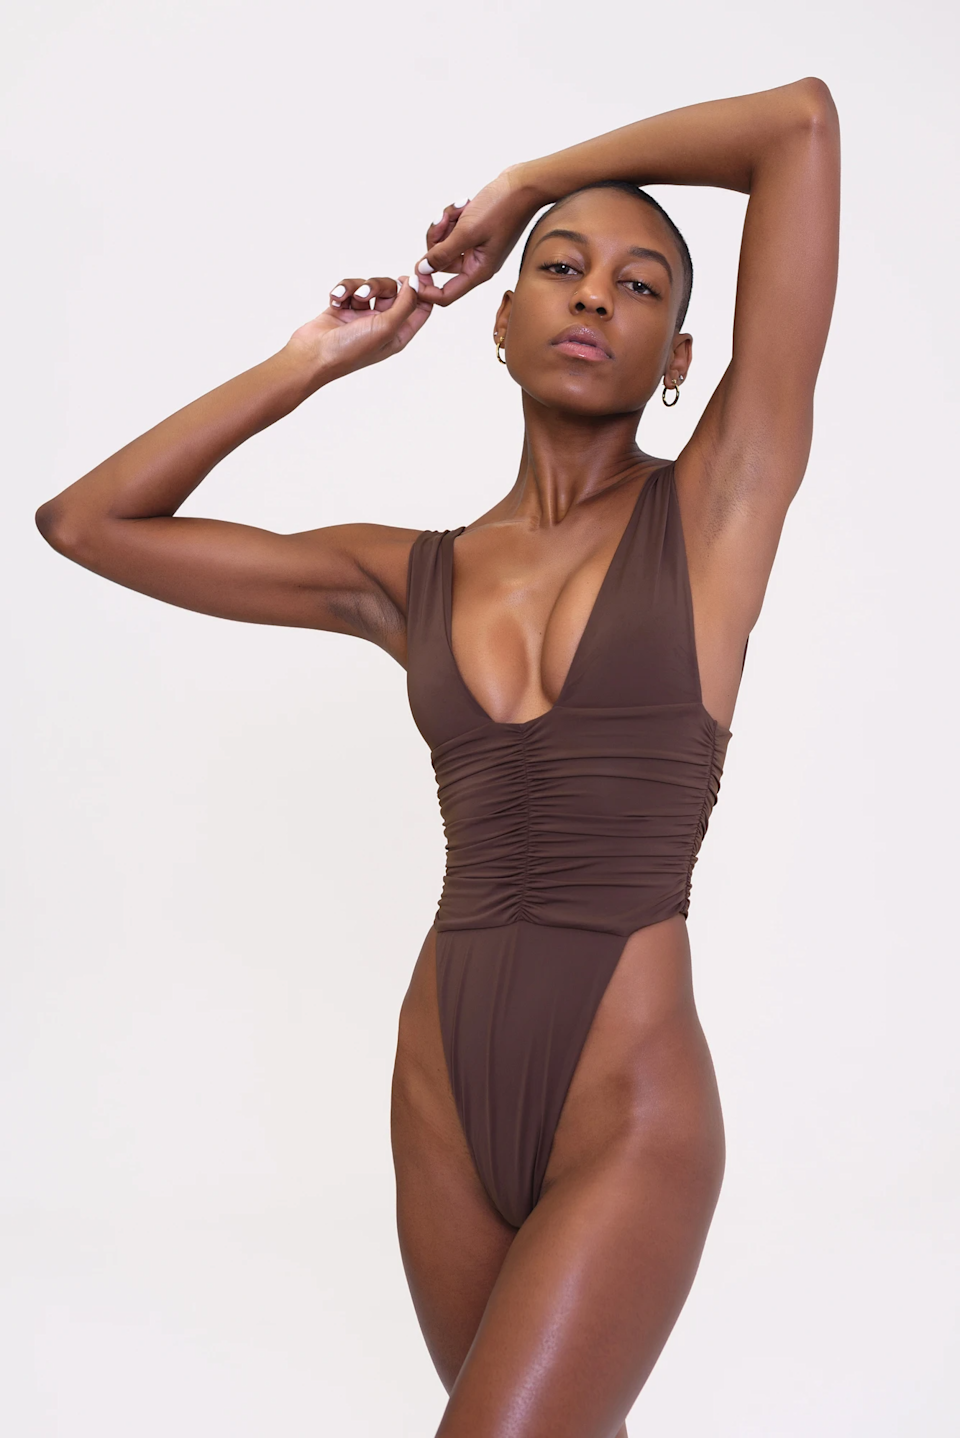 """<br> <br> <strong>RIOT SWIM</strong> Echo One Piece-Chocolate, $, available at <a href=""""https://go.skimresources.com/?id=30283X879131&url=https%3A%2F%2Fwww.riotswim.com%2Fproducts%2Fecho-one-piece-chocolate"""" rel=""""nofollow noopener"""" target=""""_blank"""" data-ylk=""""slk:RIOT SWIM"""" class=""""link rapid-noclick-resp"""">RIOT SWIM</a>"""